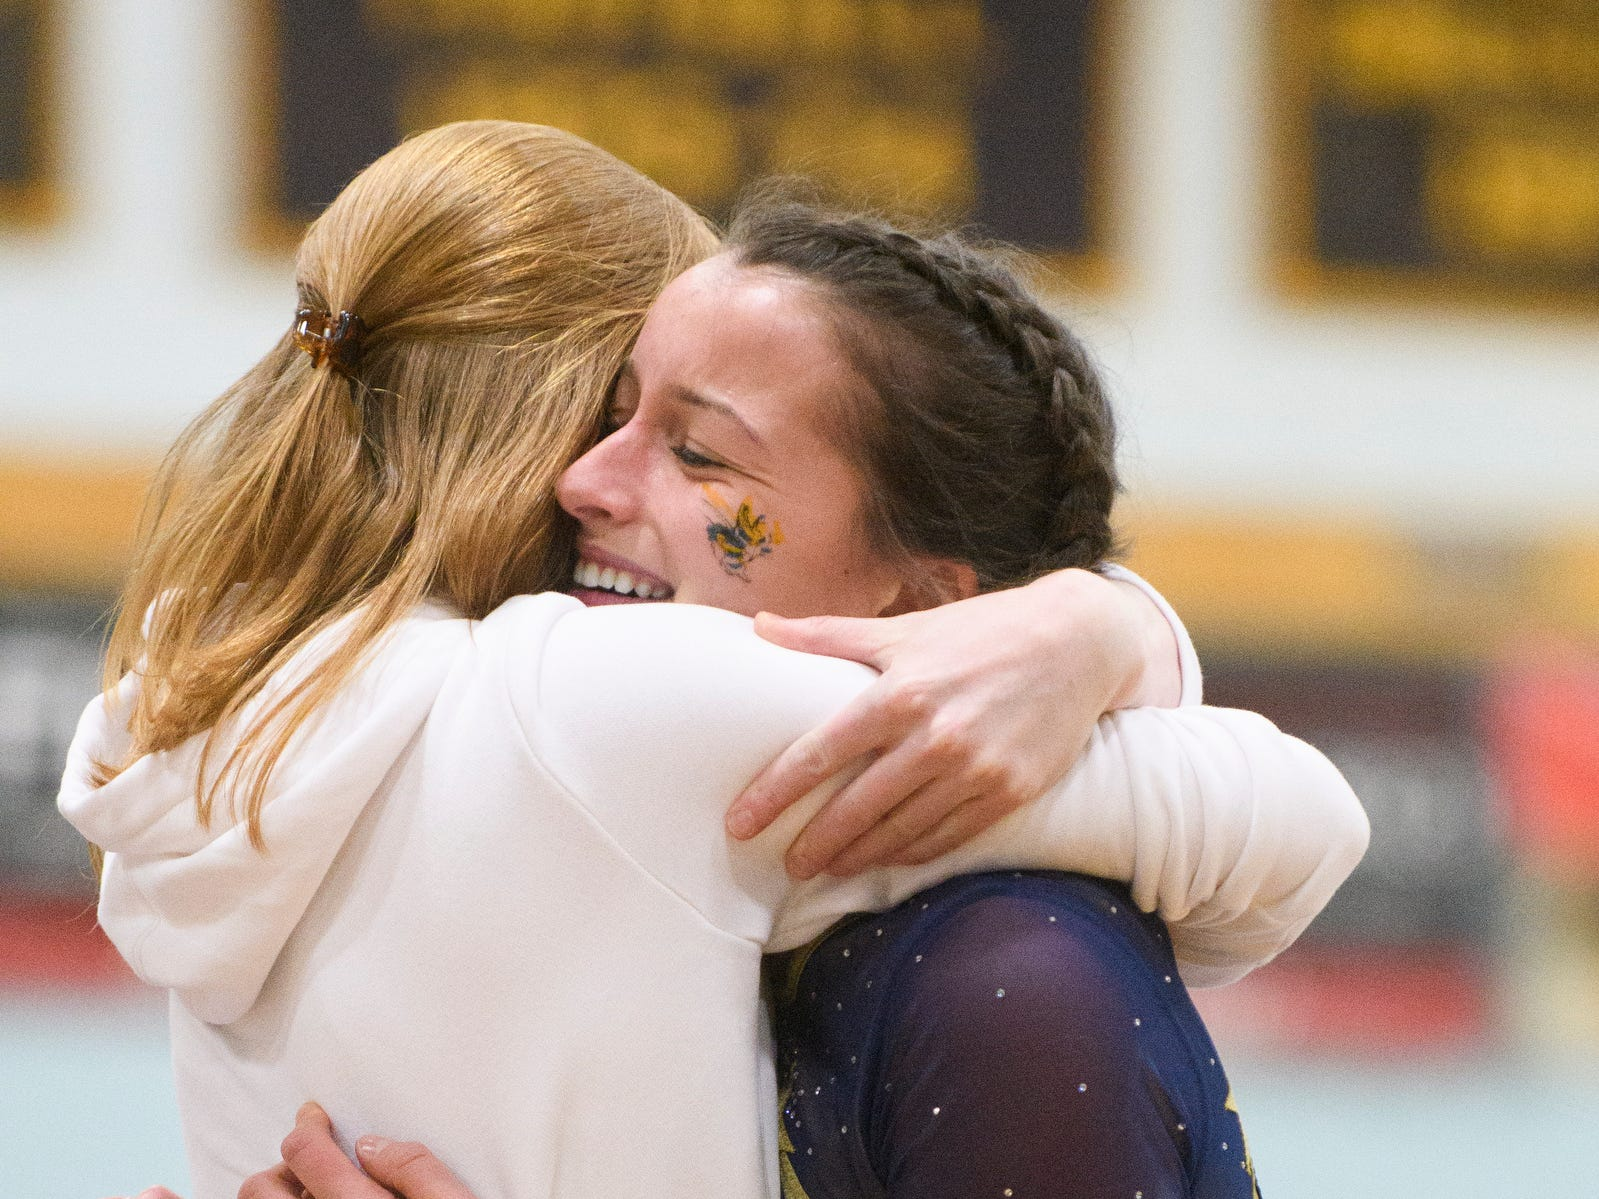 Essex's Abigael Gleason hugs a coach after her bar routine during the 2019 high school gymnastics championship at Essex High School on Saturday afternoon February 16, 2019 in Essex, Vermont.